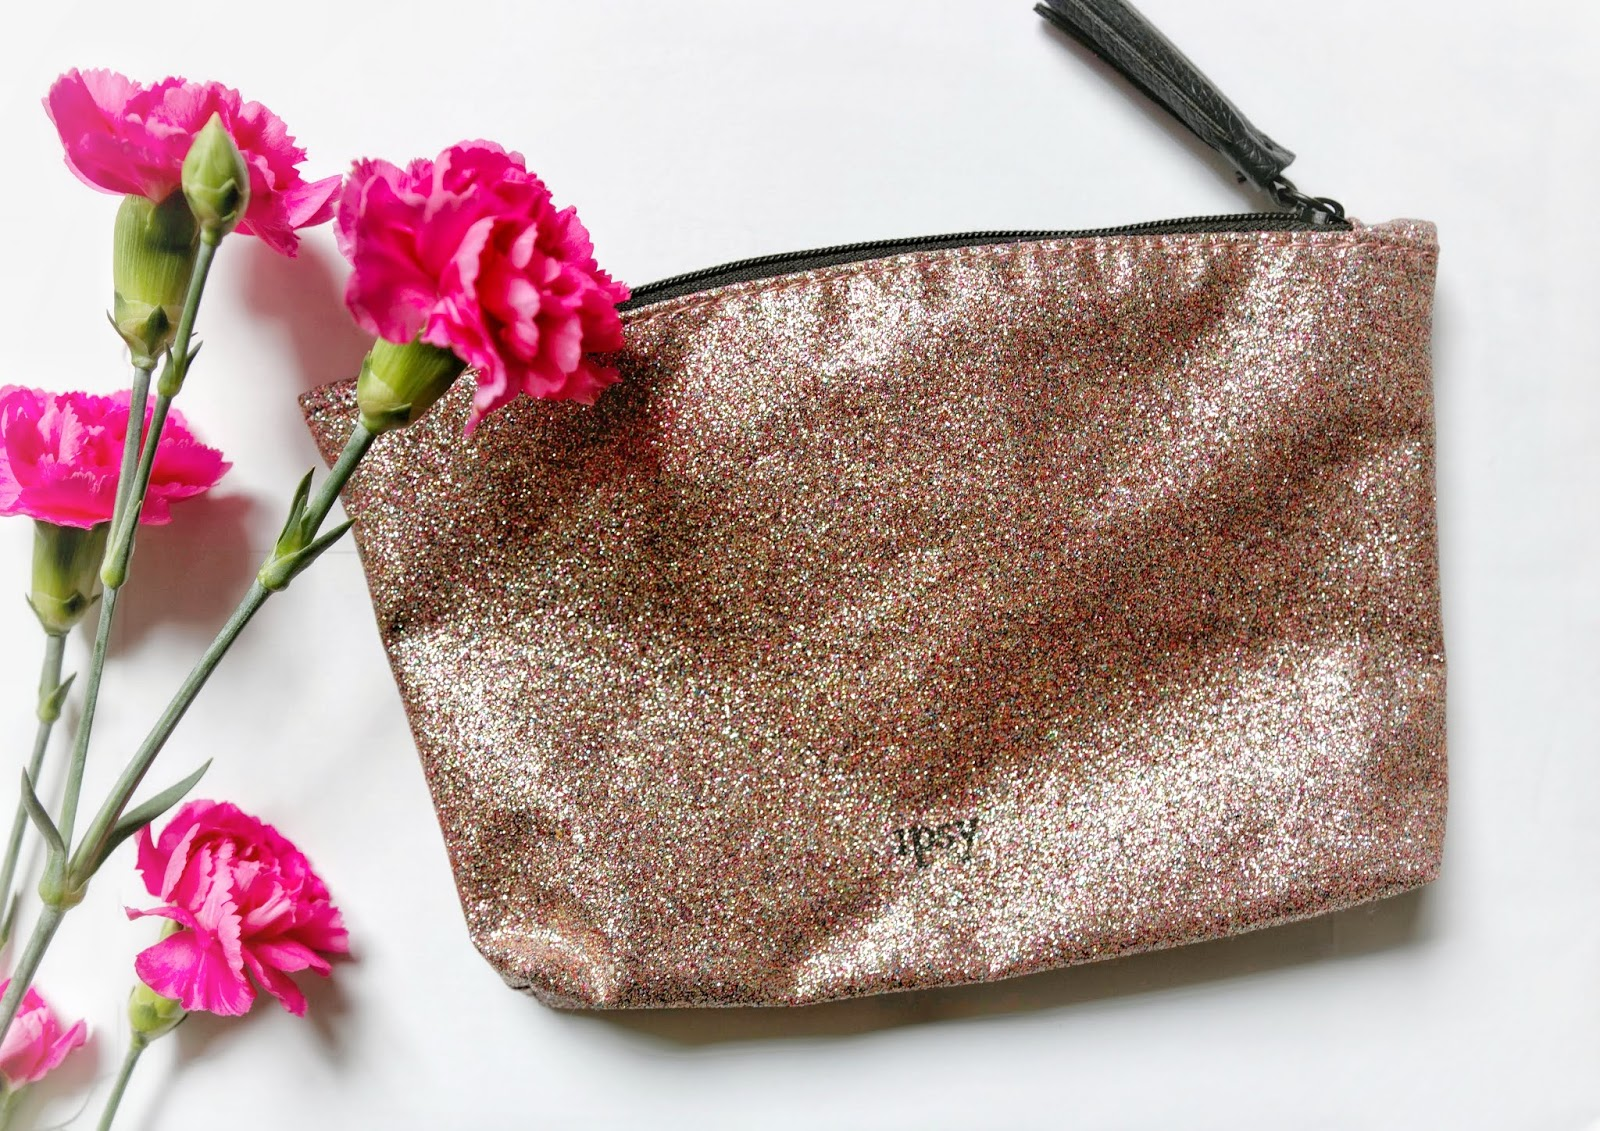 ipsy glam bag glitter bag may 2019 beauty guru review makeup